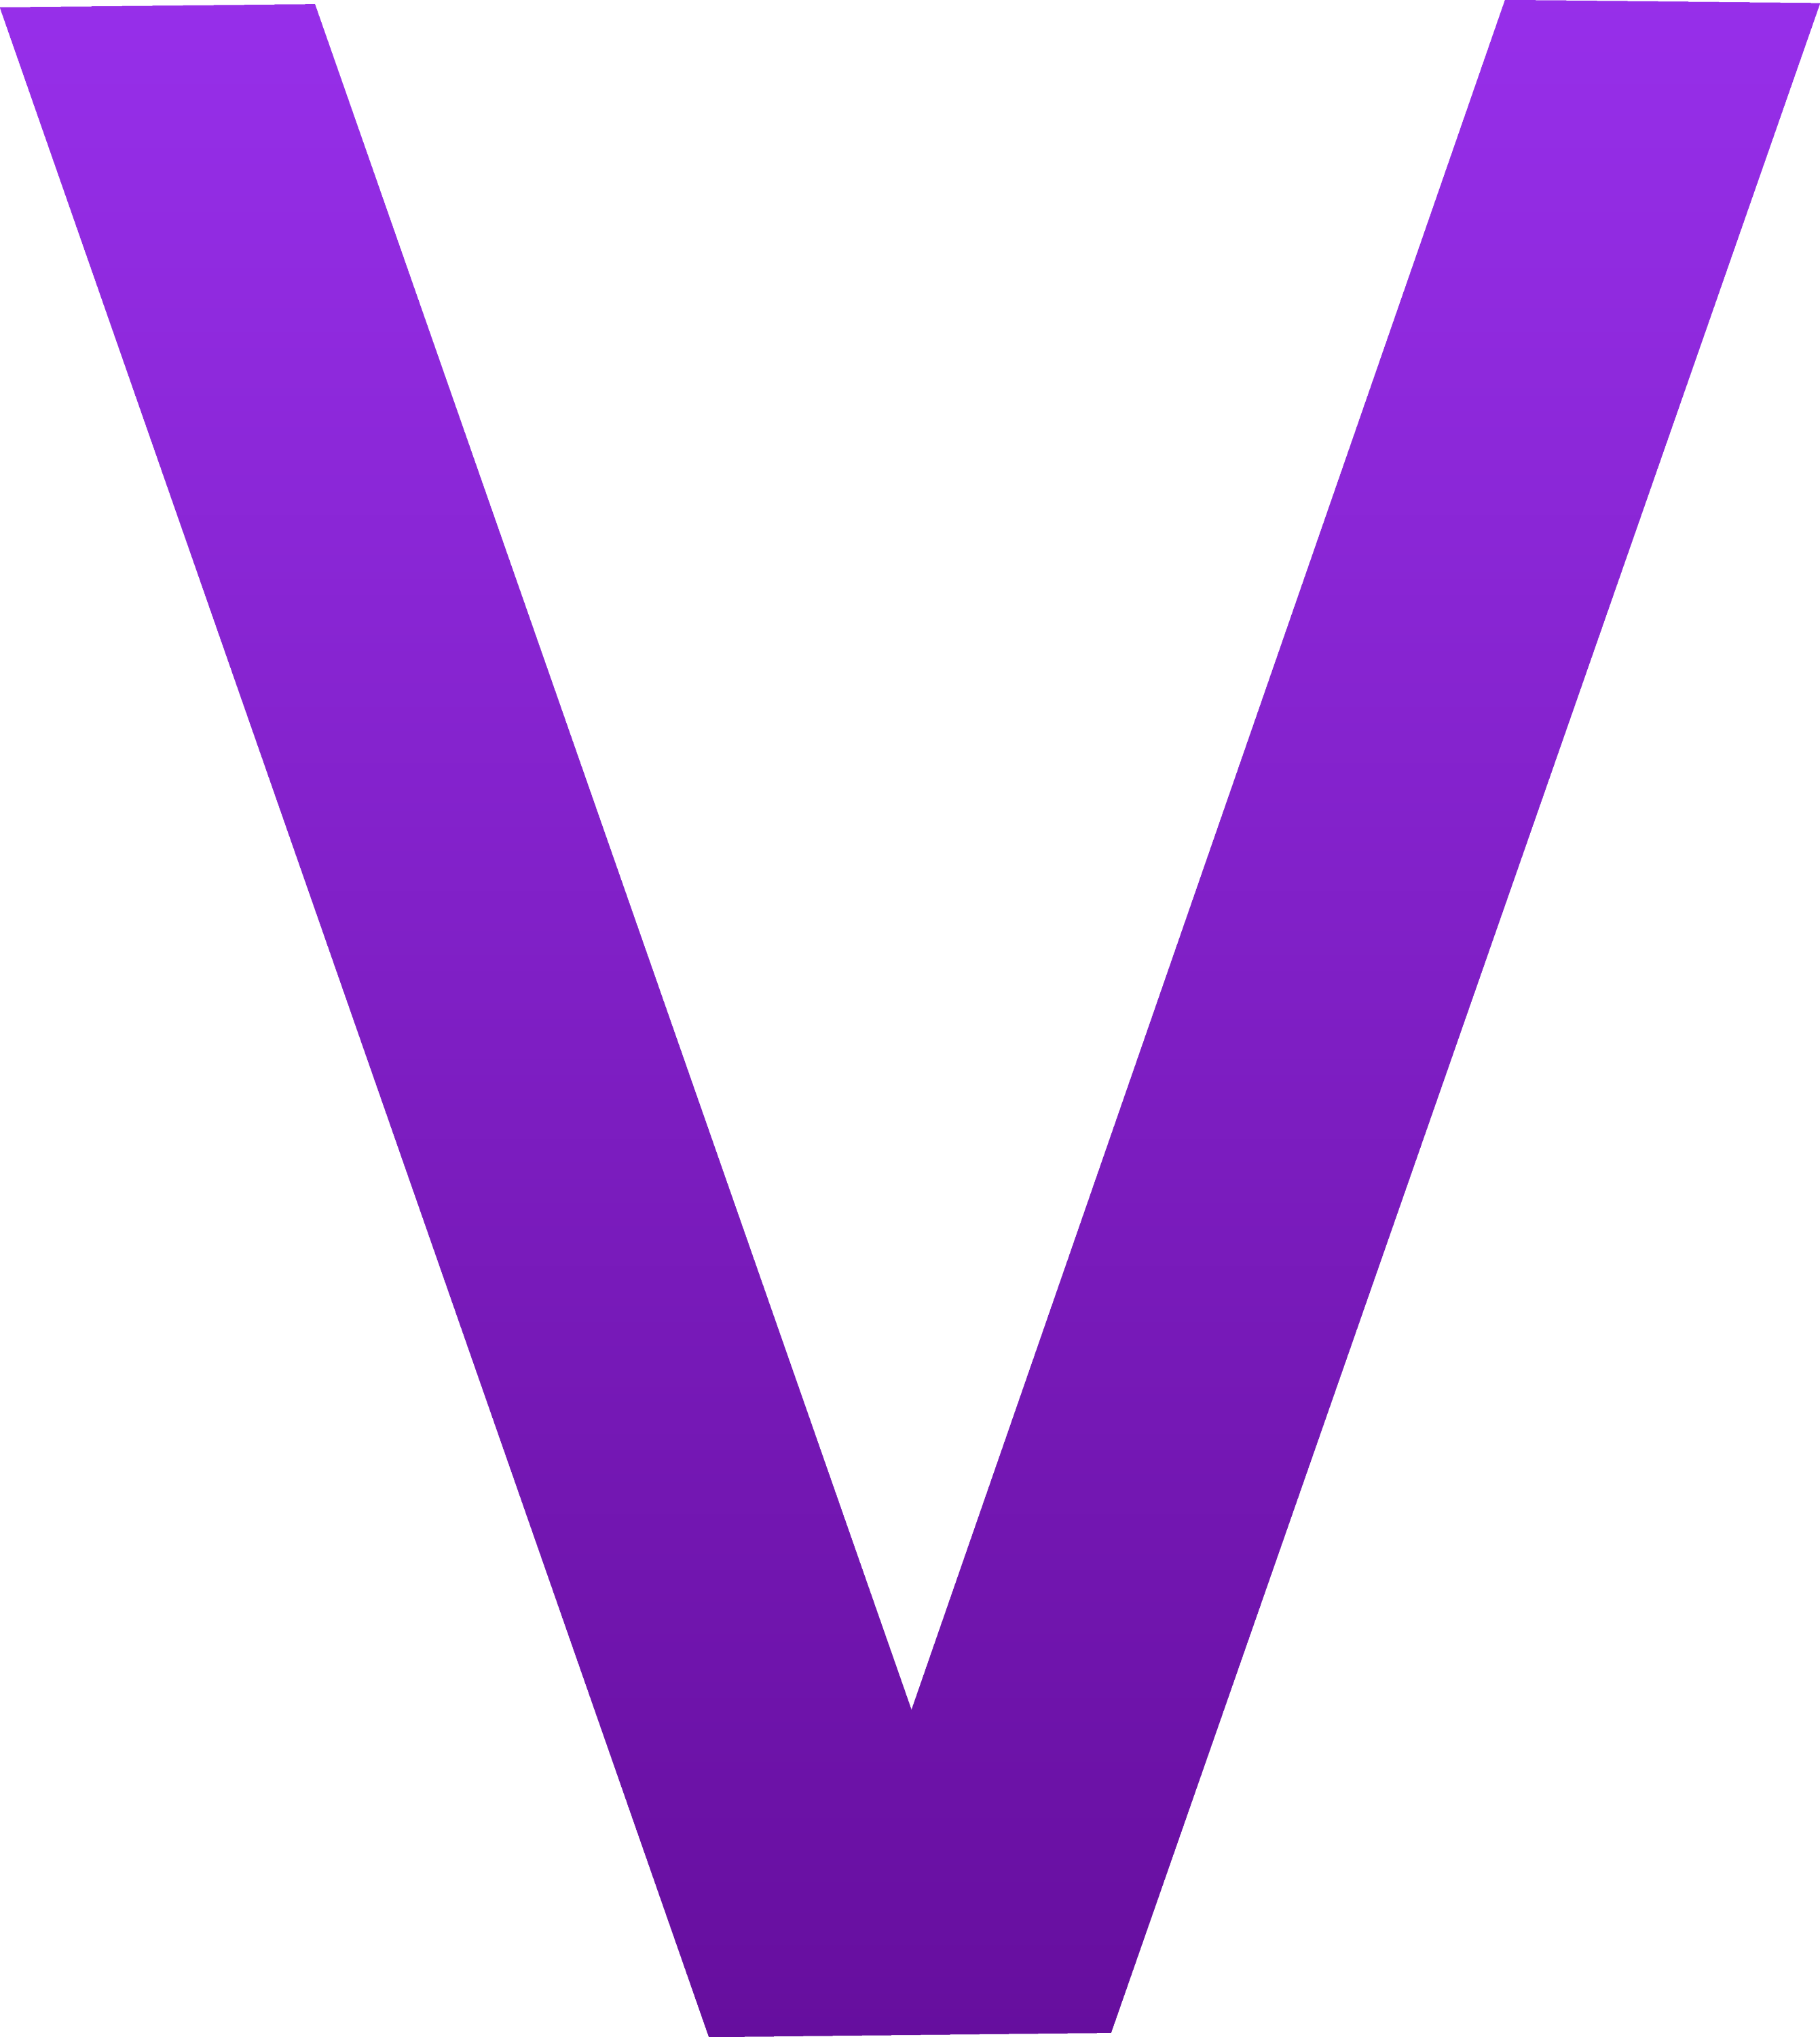 Back > Pix For > The Letter V In Purple